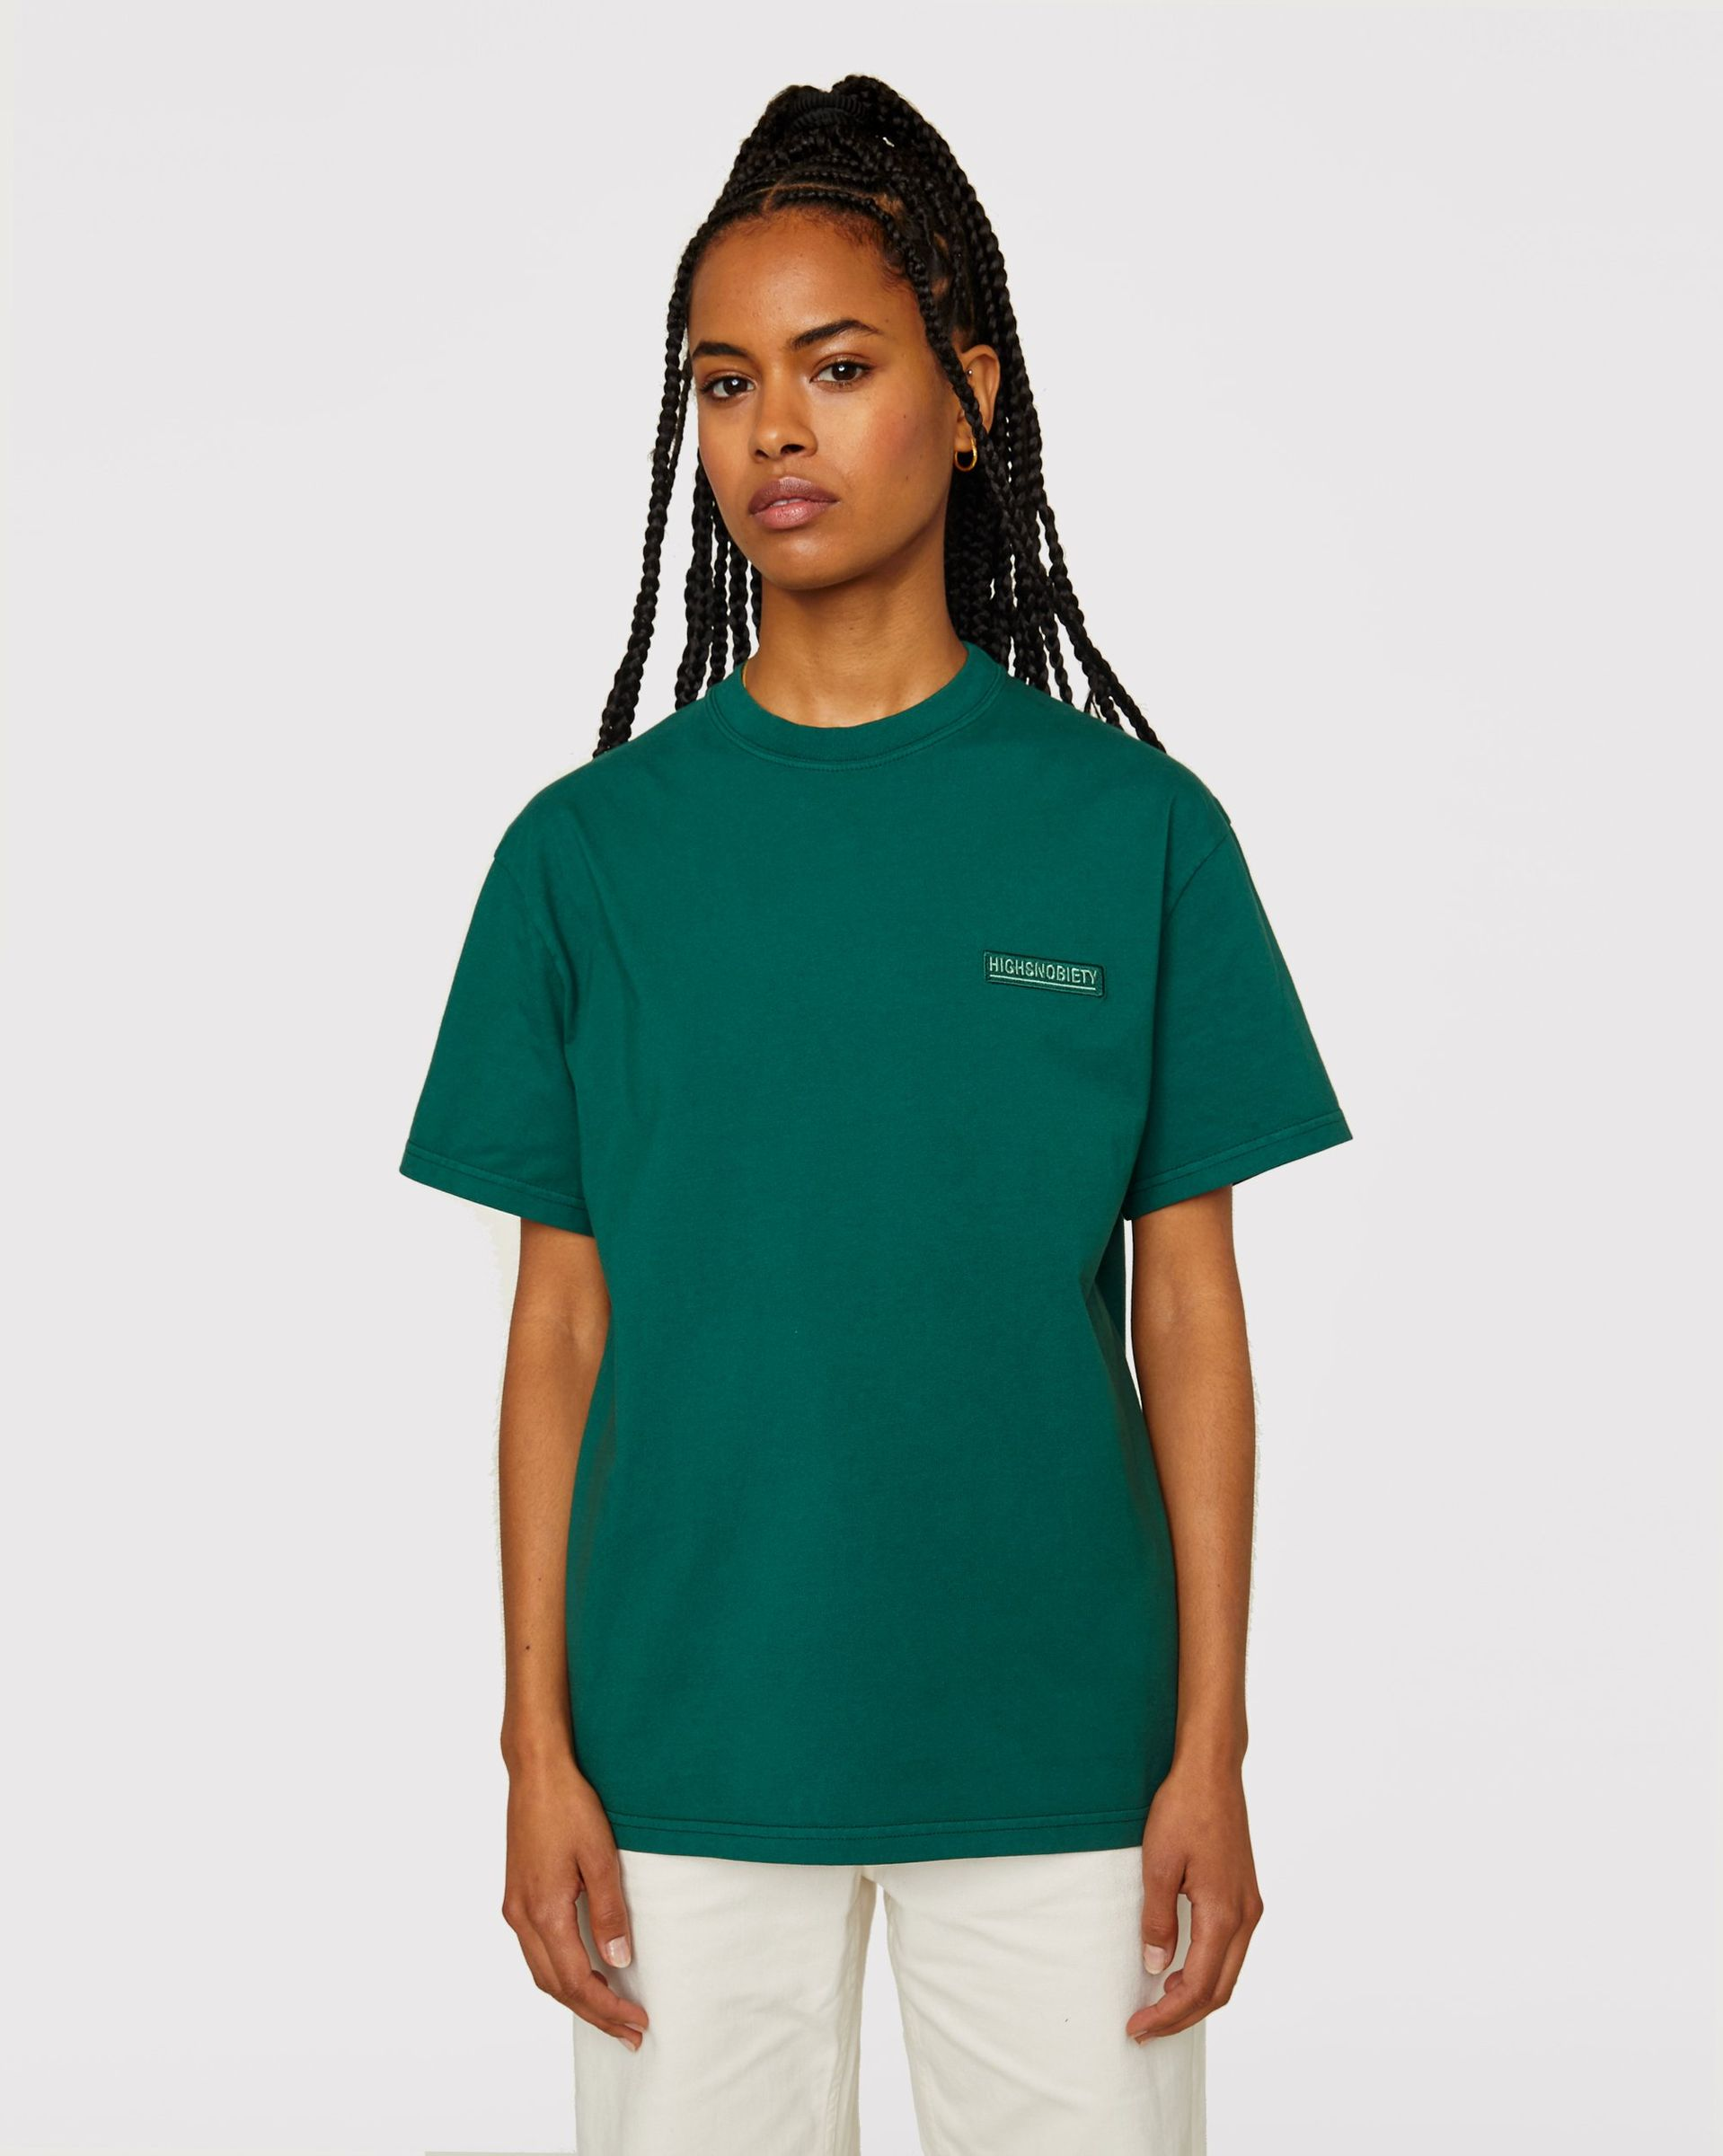 Highsnobiety Staples - T-Shirt Green - Image 6